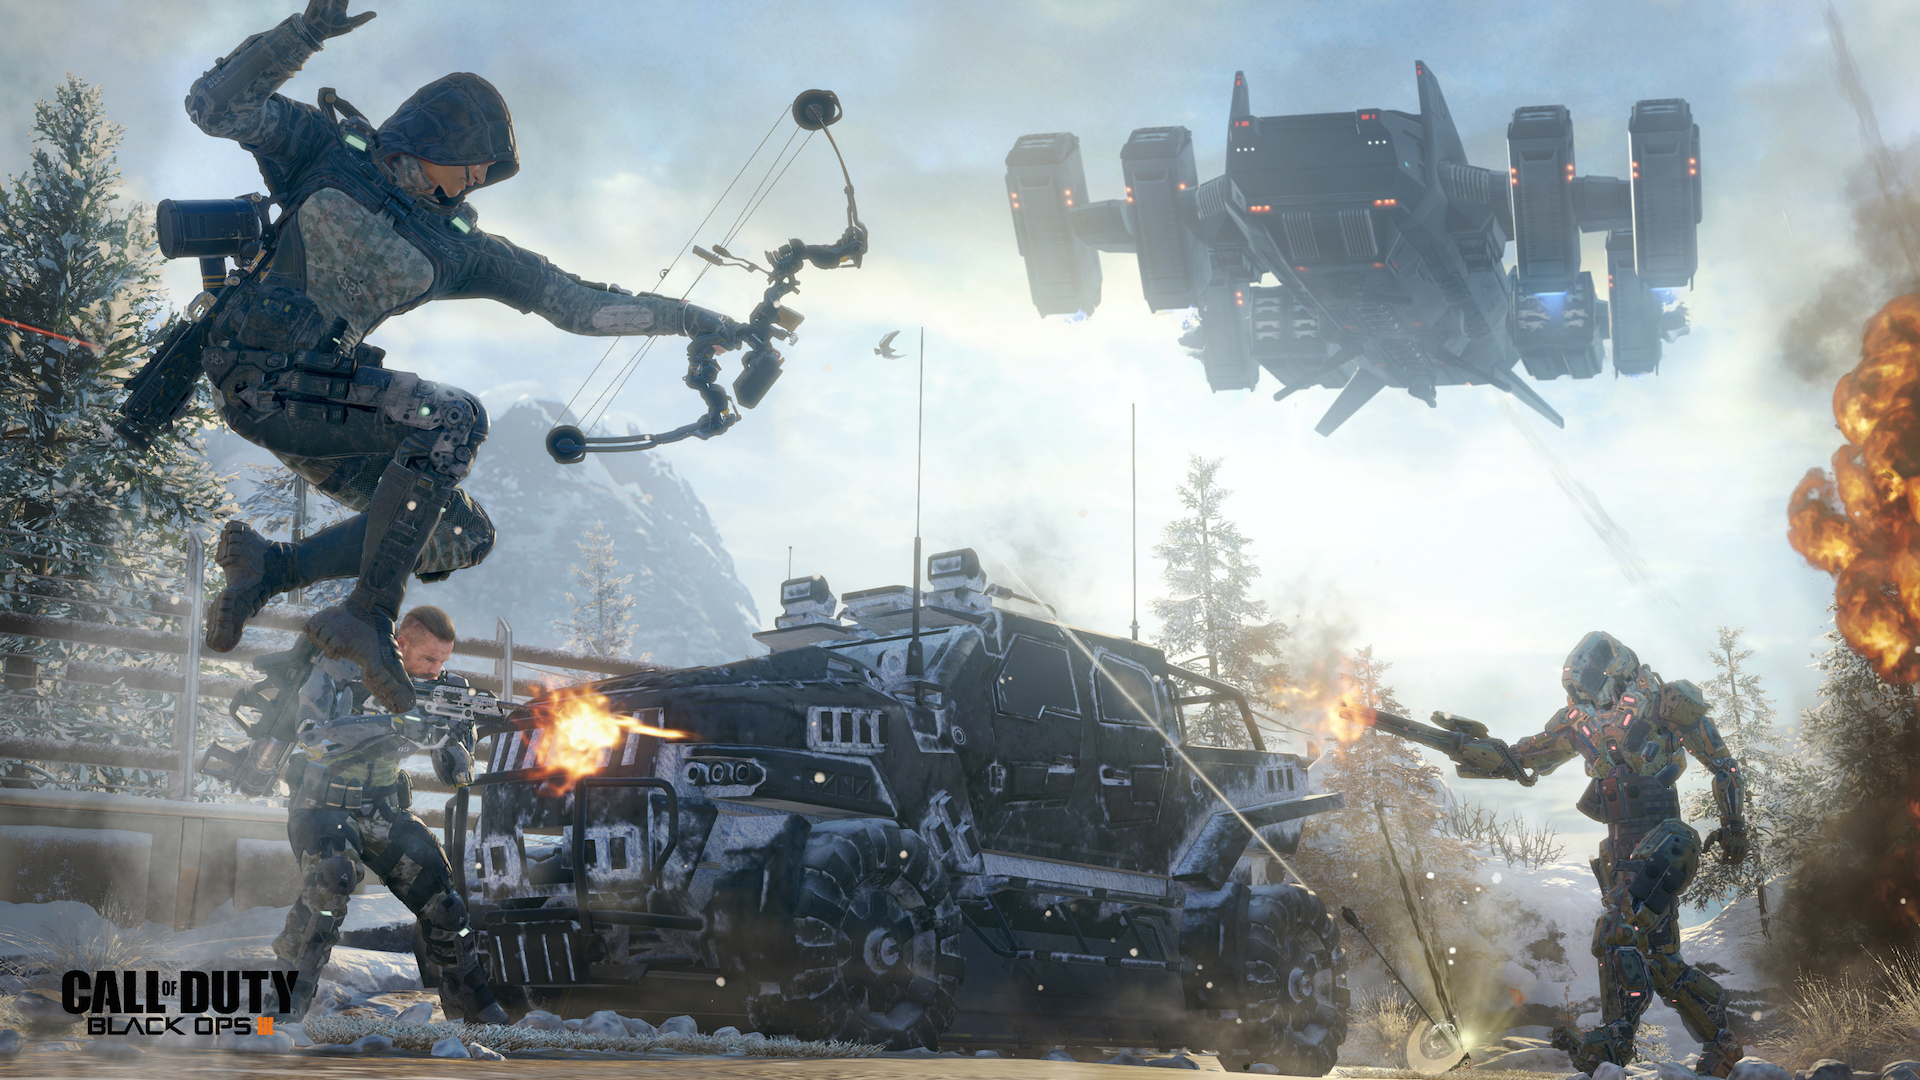 """Call of Duty: Black Ops III"" Has Brutal One-Hit Difficulty - You Get Shot Once, You Die"